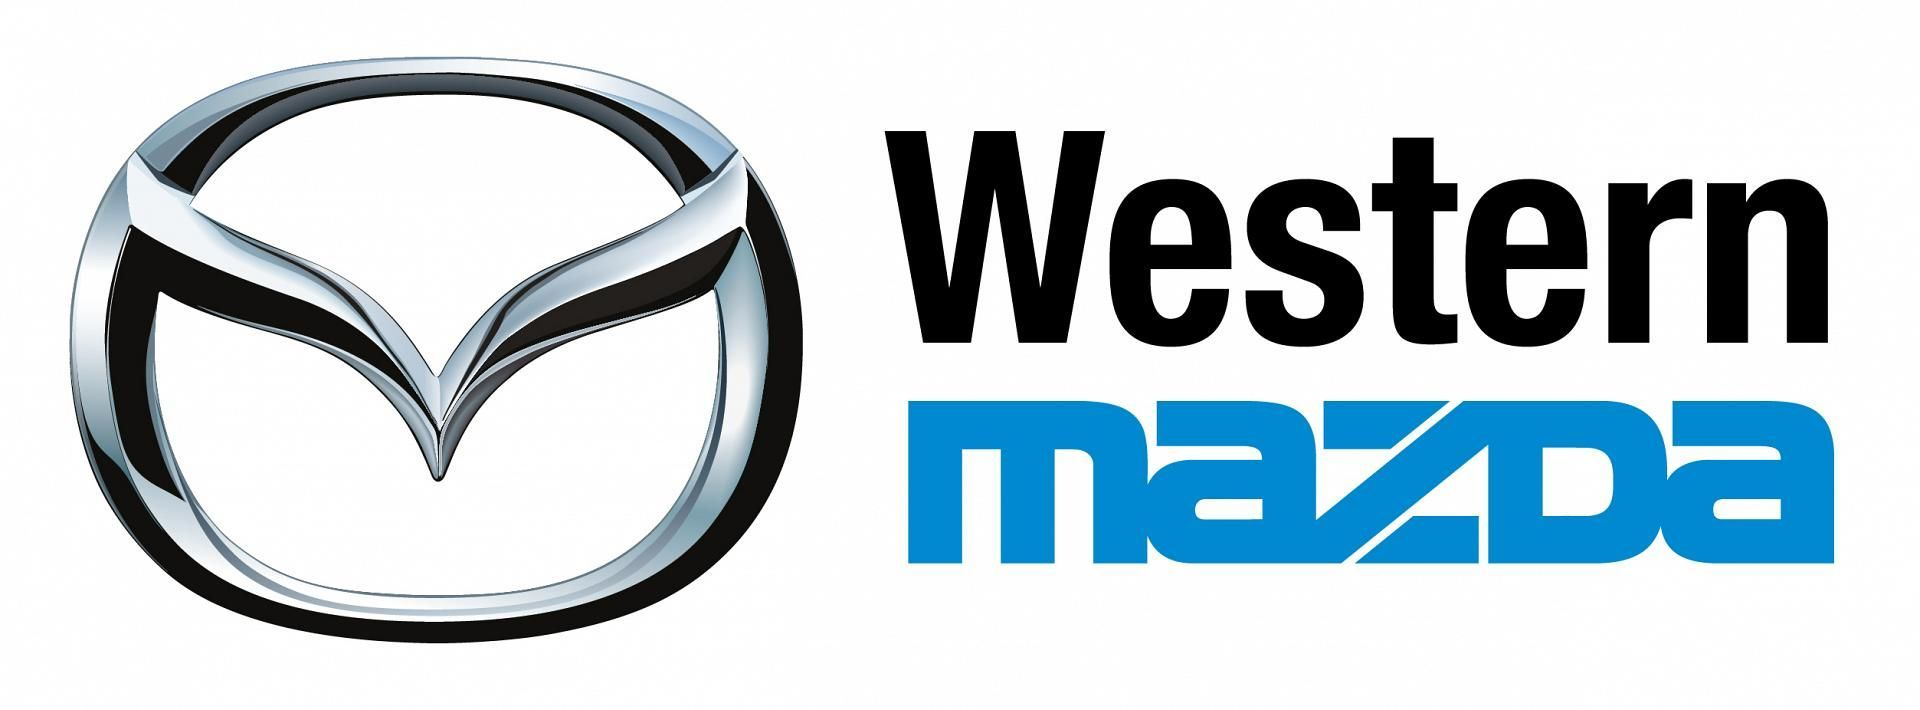 Western Mazda Summer Fun Video Challenge Rules